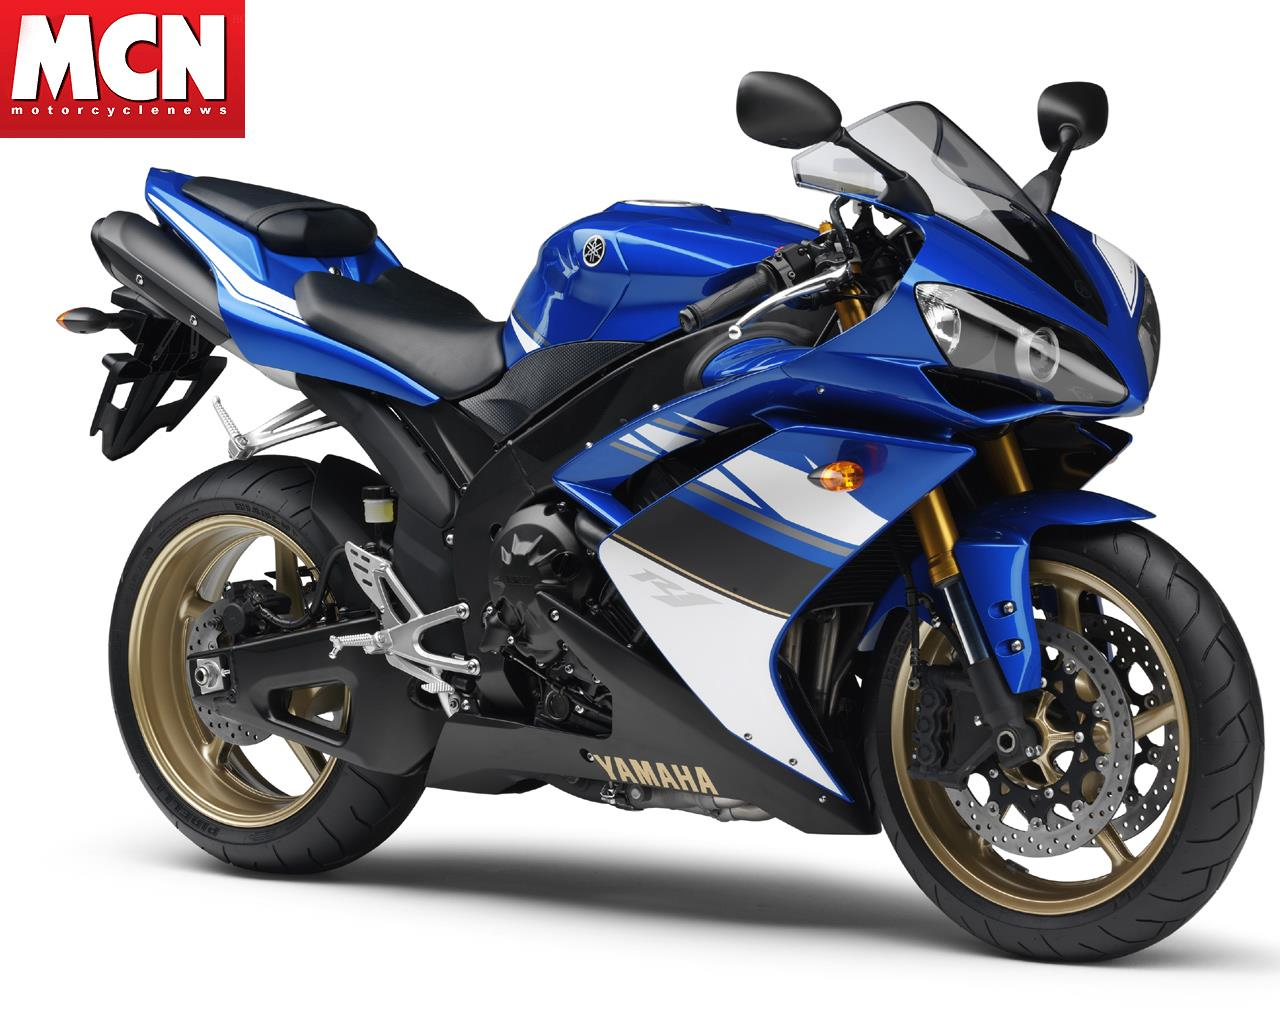 yamaha r1 blue bike - photo #22